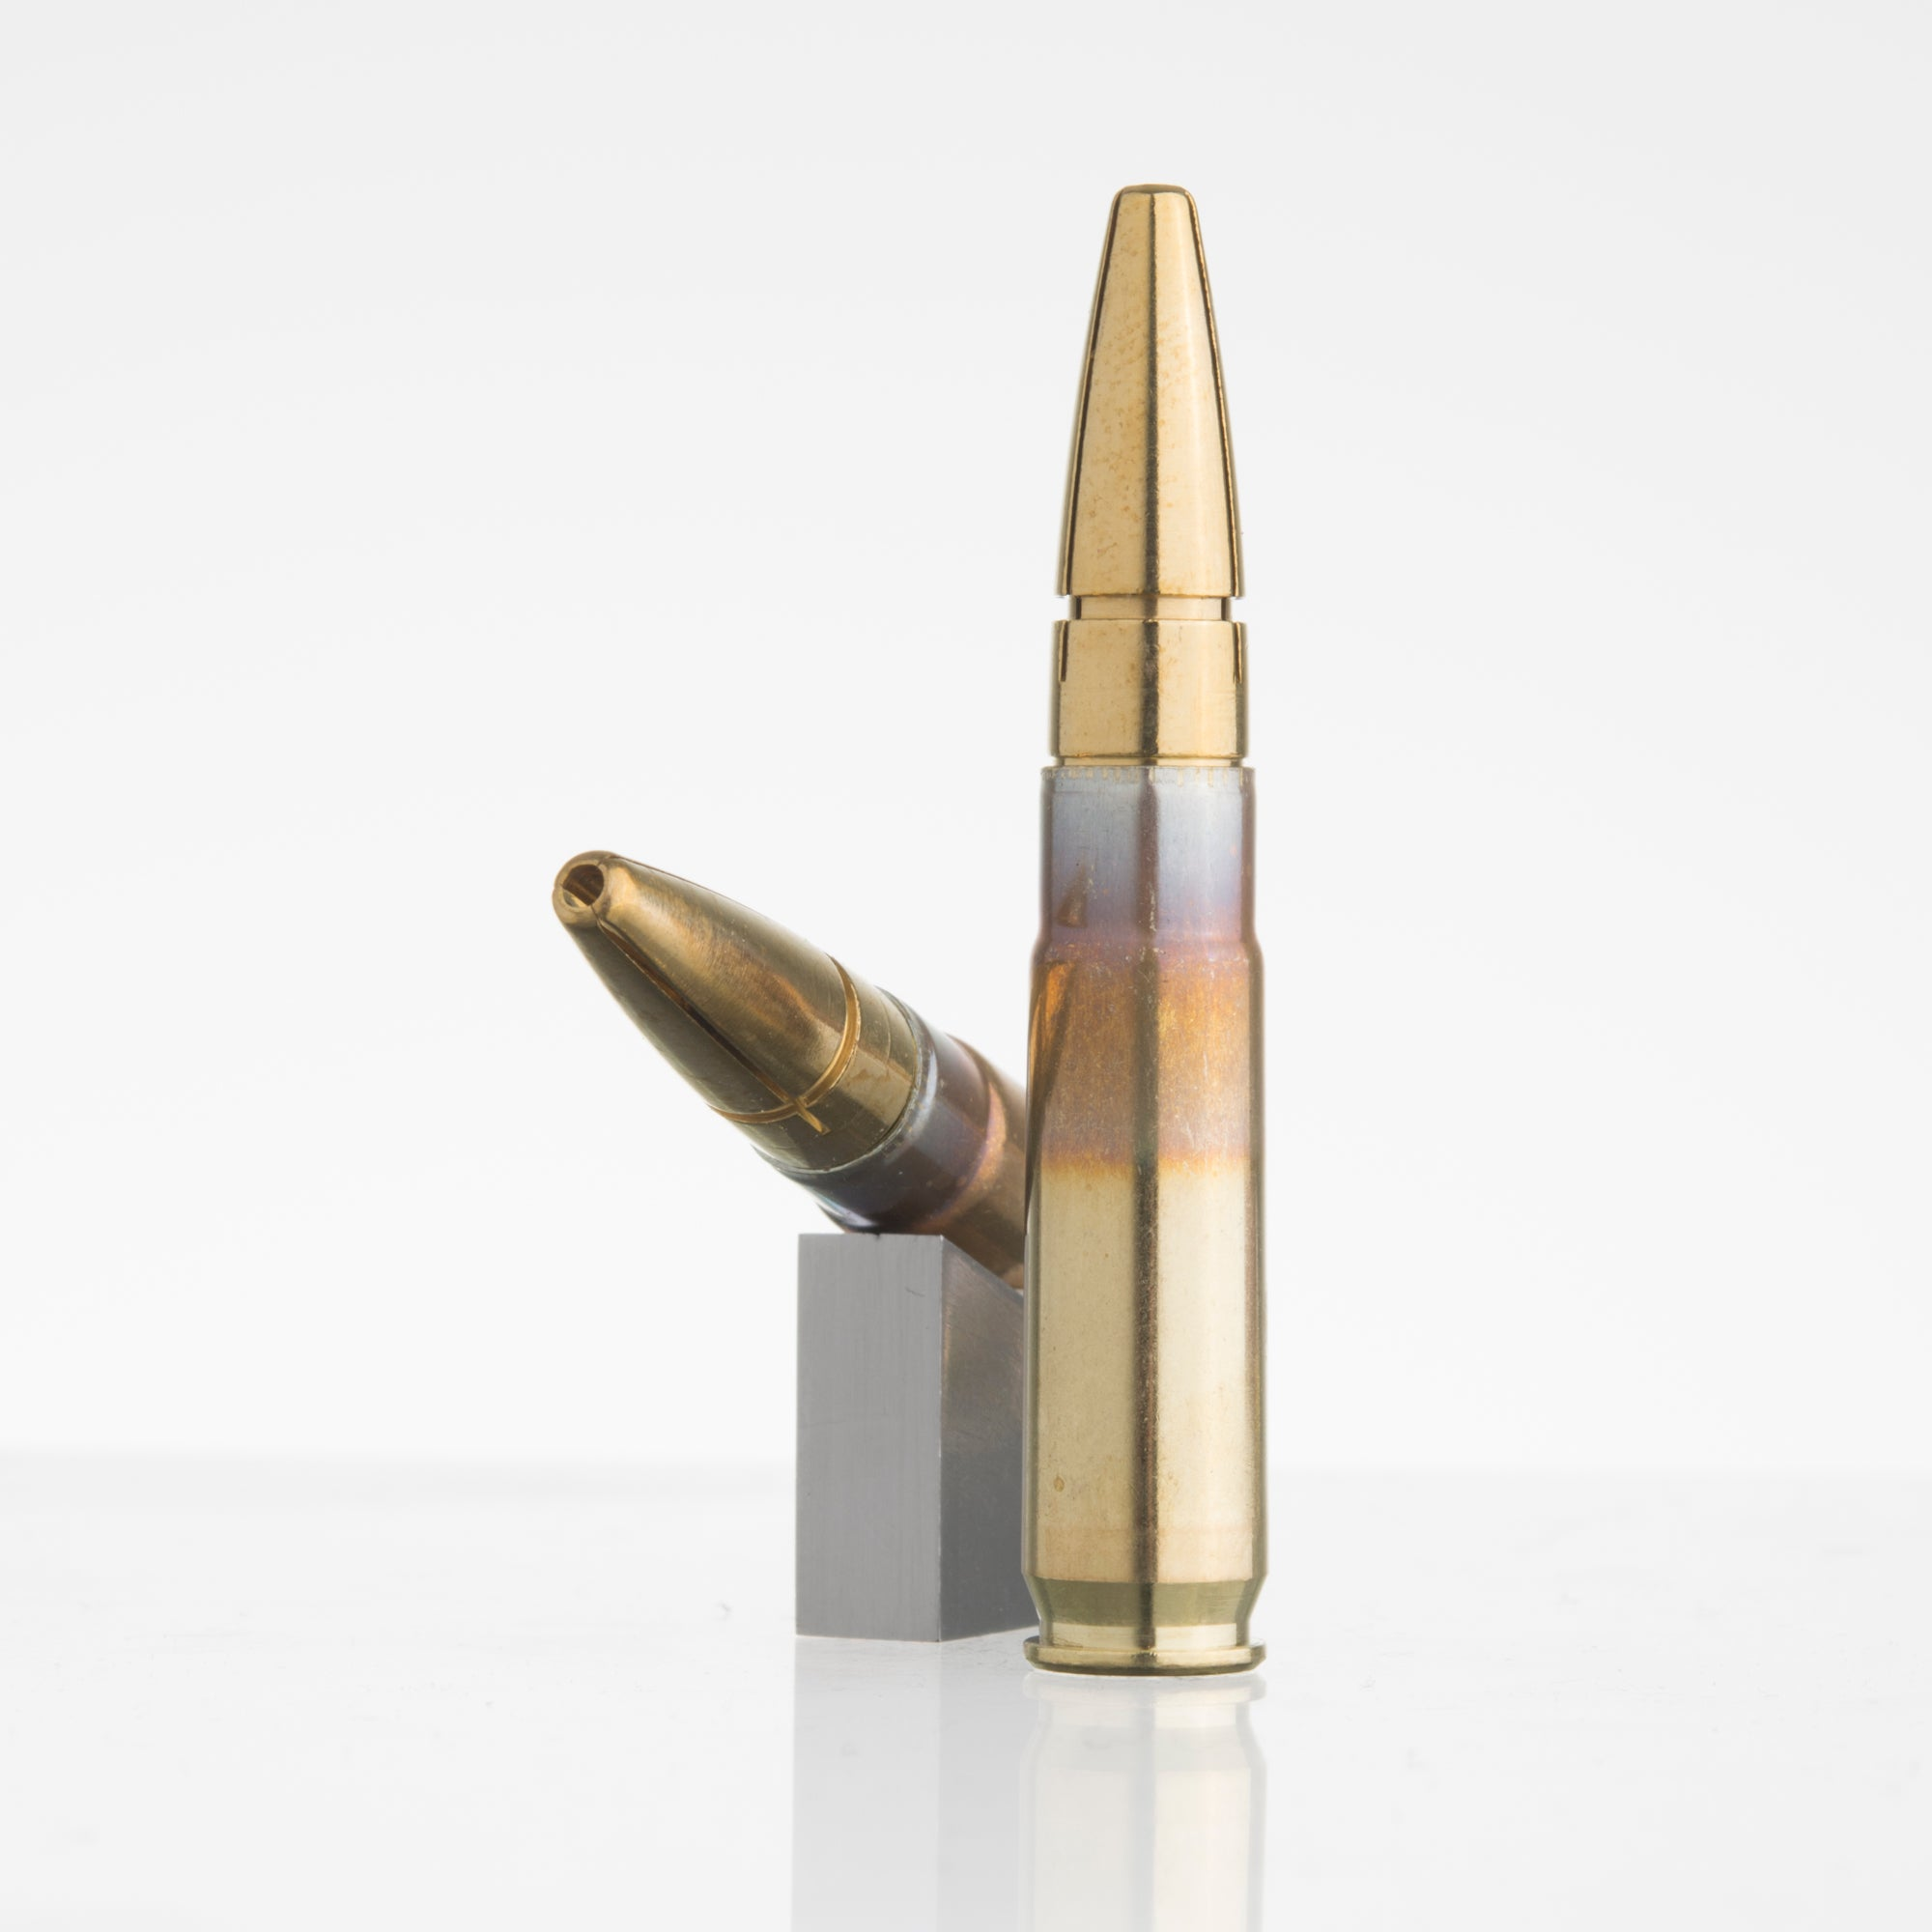 300 AAC Blackout / Whisper 174gr Subsonic Controlled Fracturing Ammunition